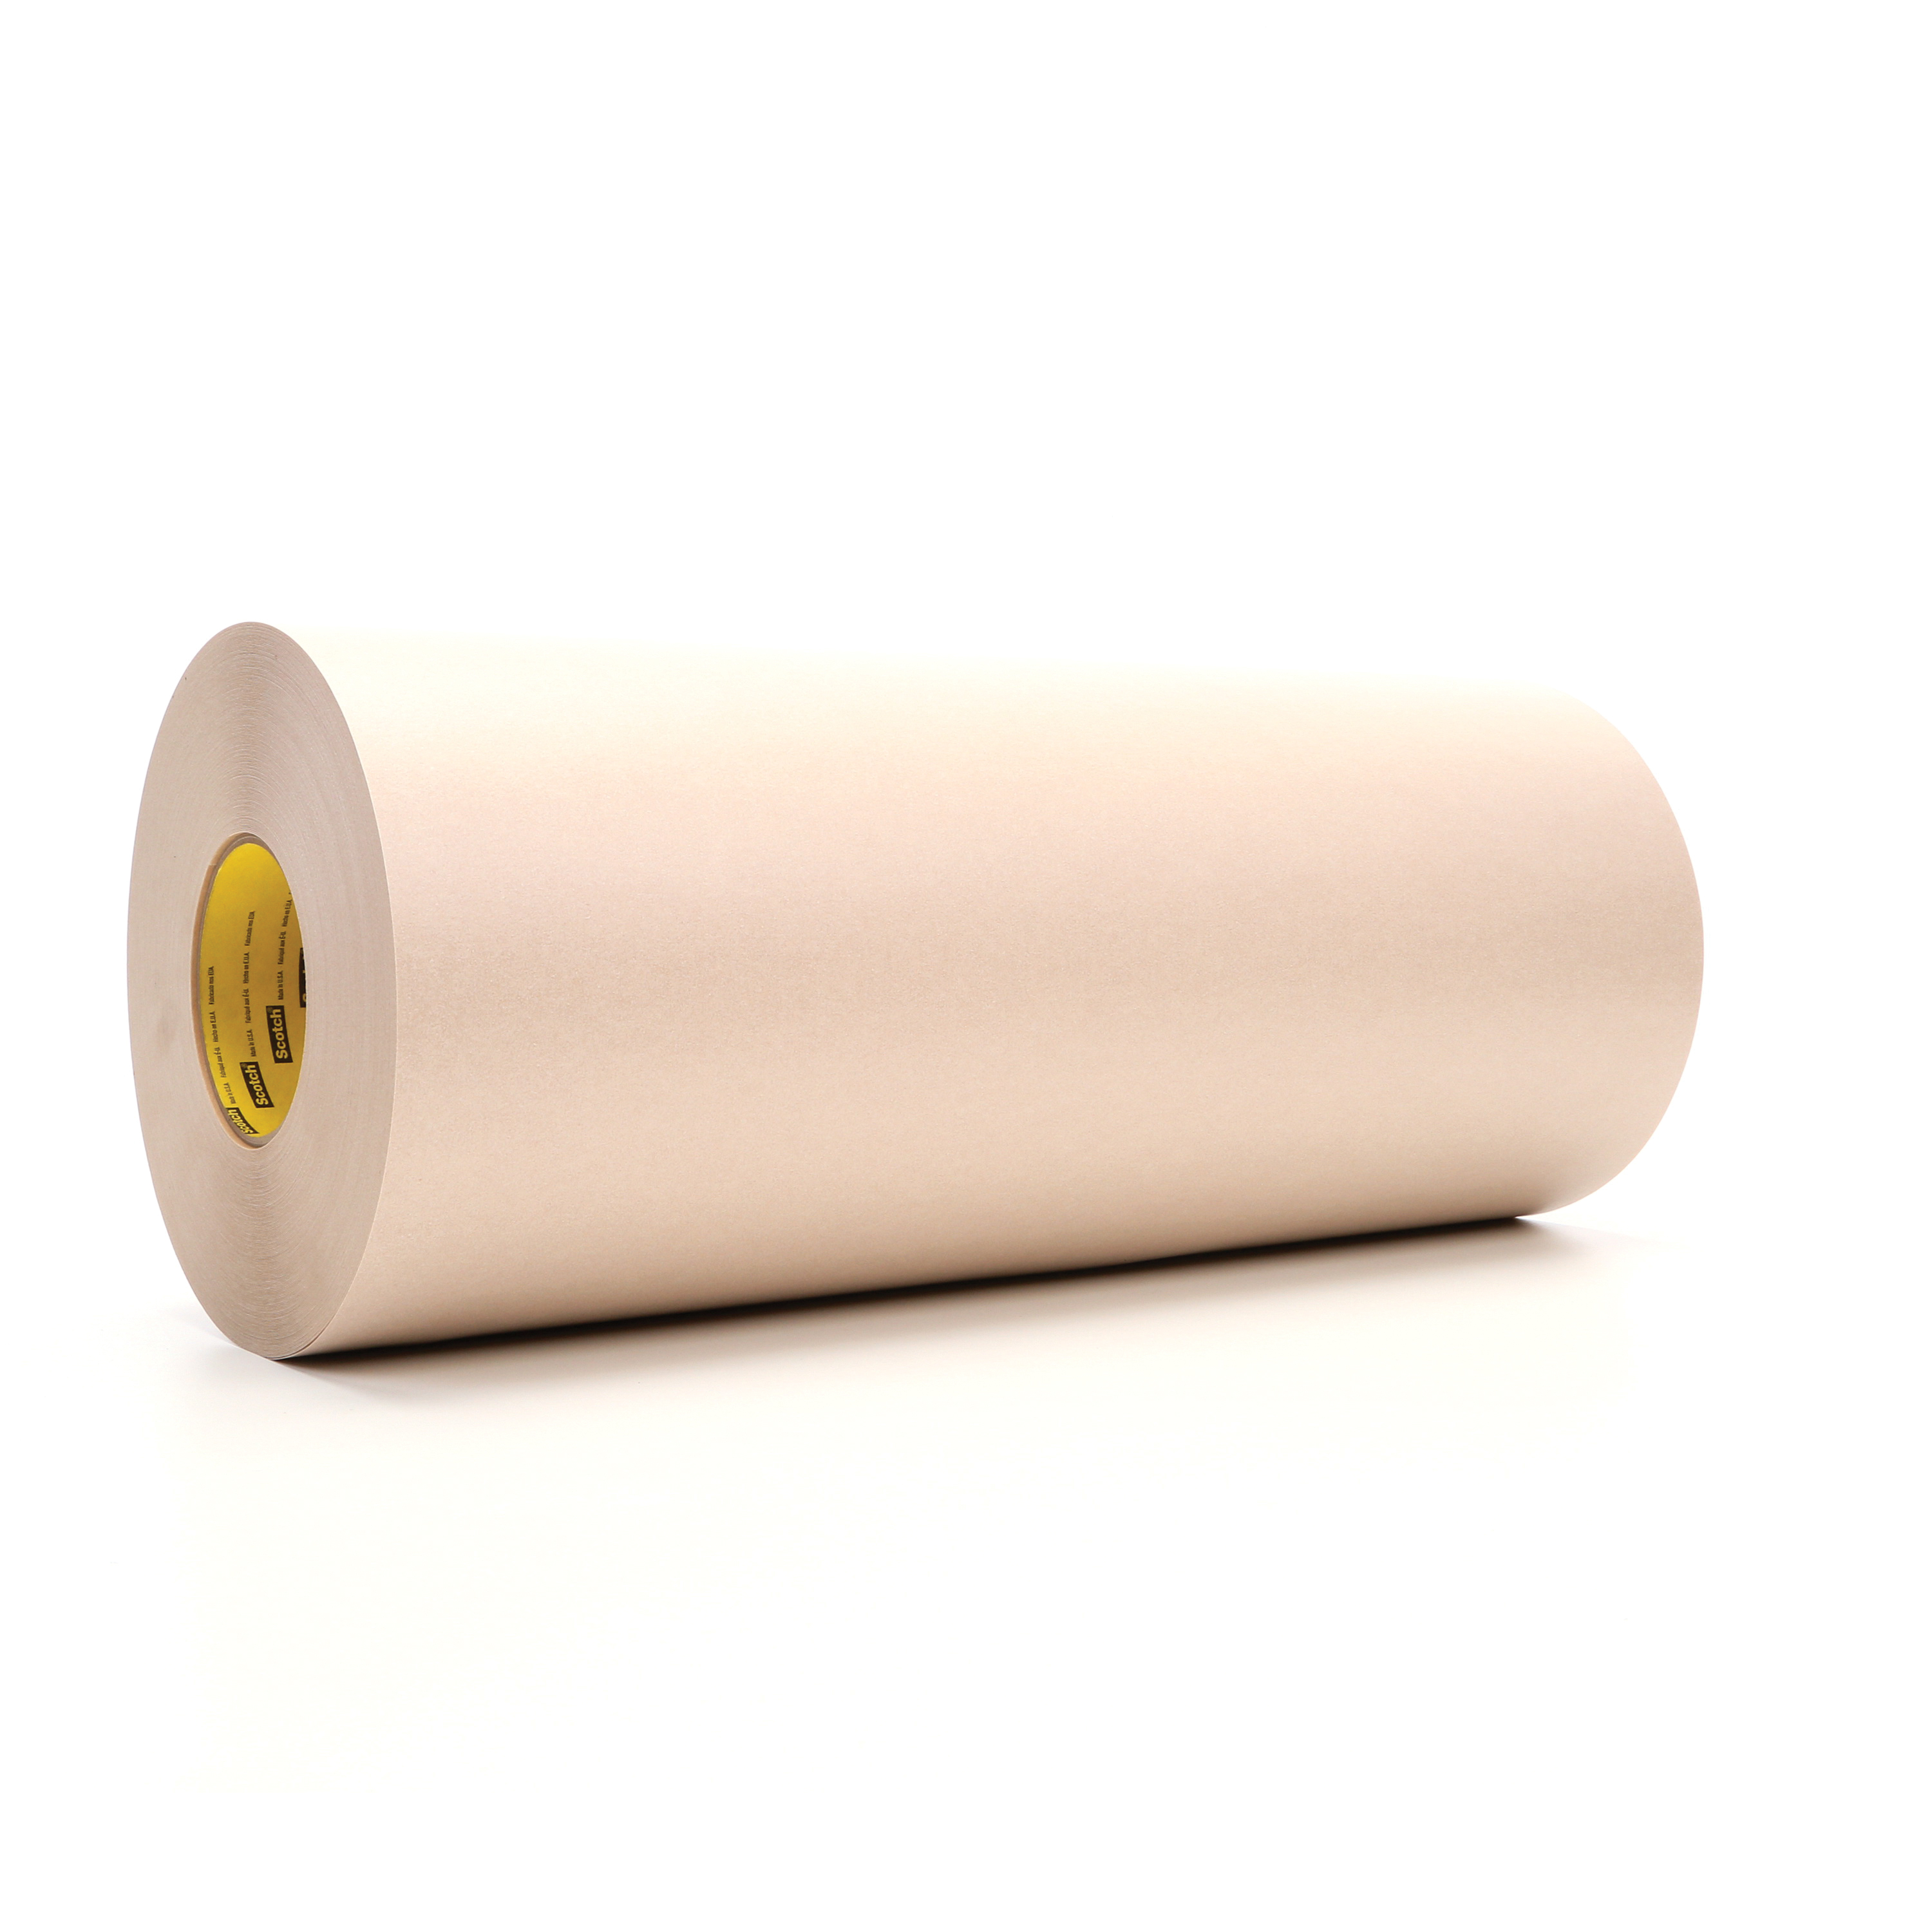 3M™ 021200-05419 Heavy Duty Protective Tape, 60 yd L x 18 in W, 16.7 mil THK, Rubber Adhesive, Flat Paper Stock Backing, Tan